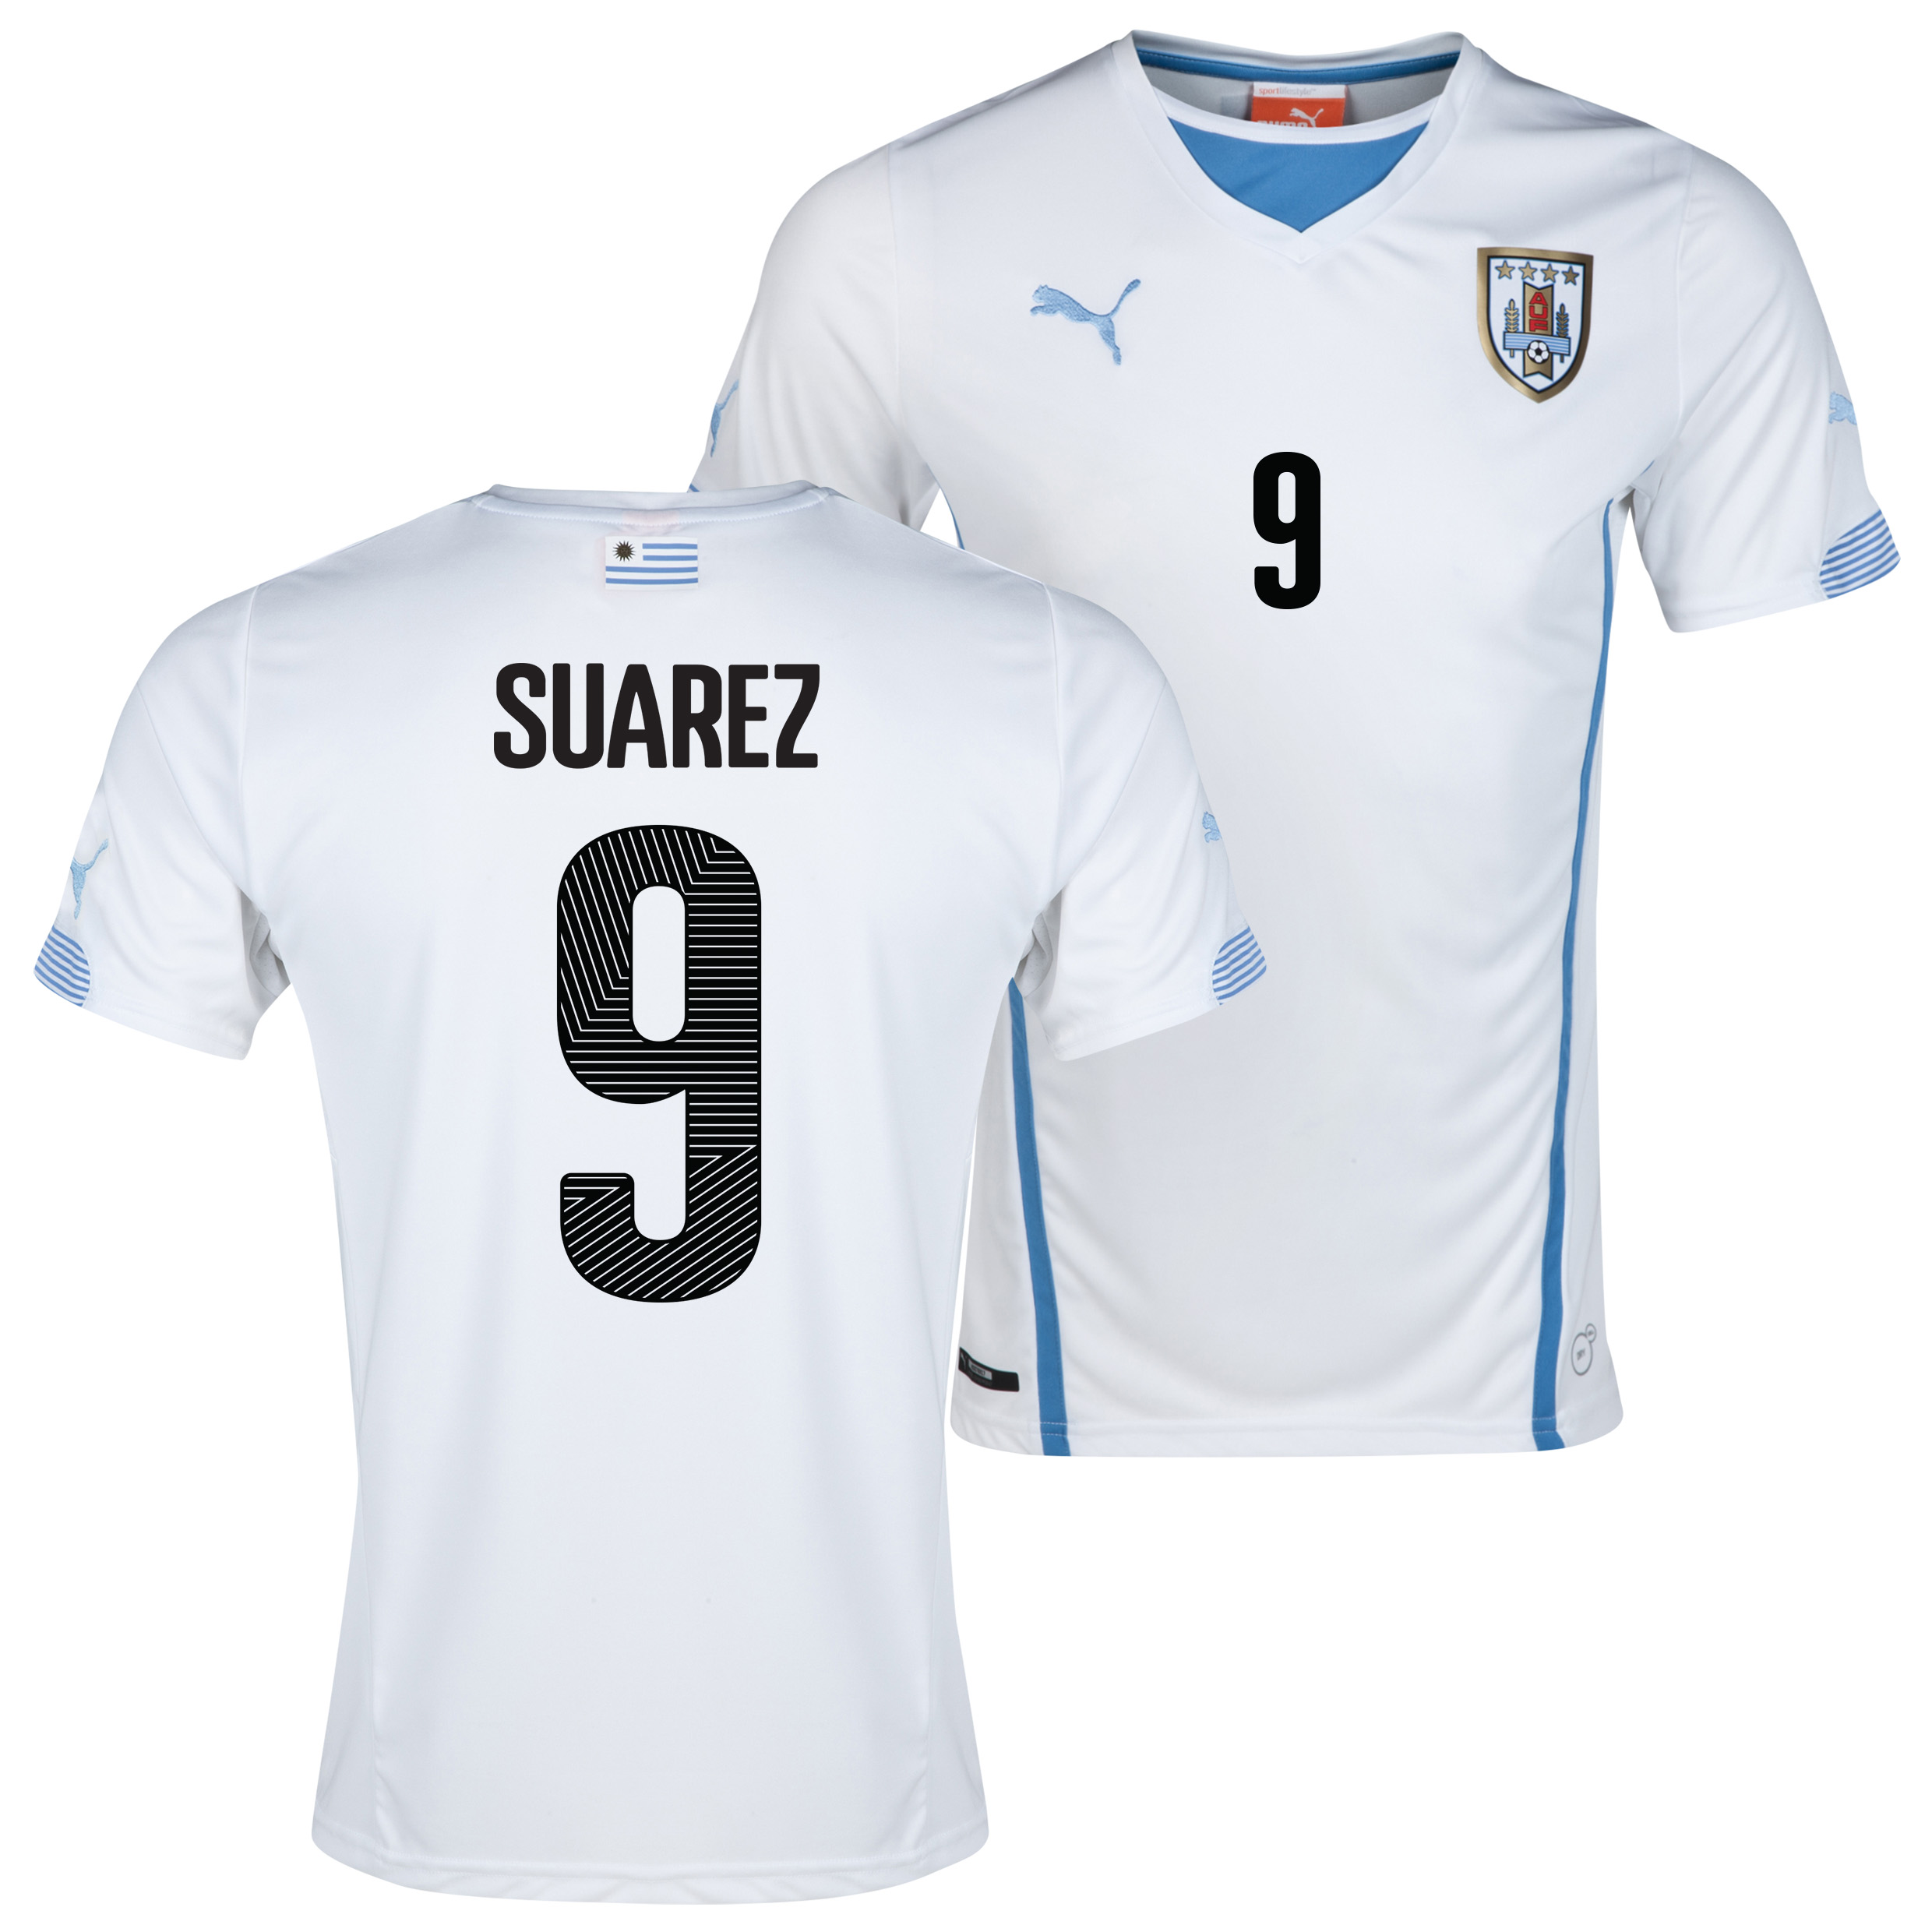 Uruguay Away Shirt 2013/14 with Suarez 9 printing